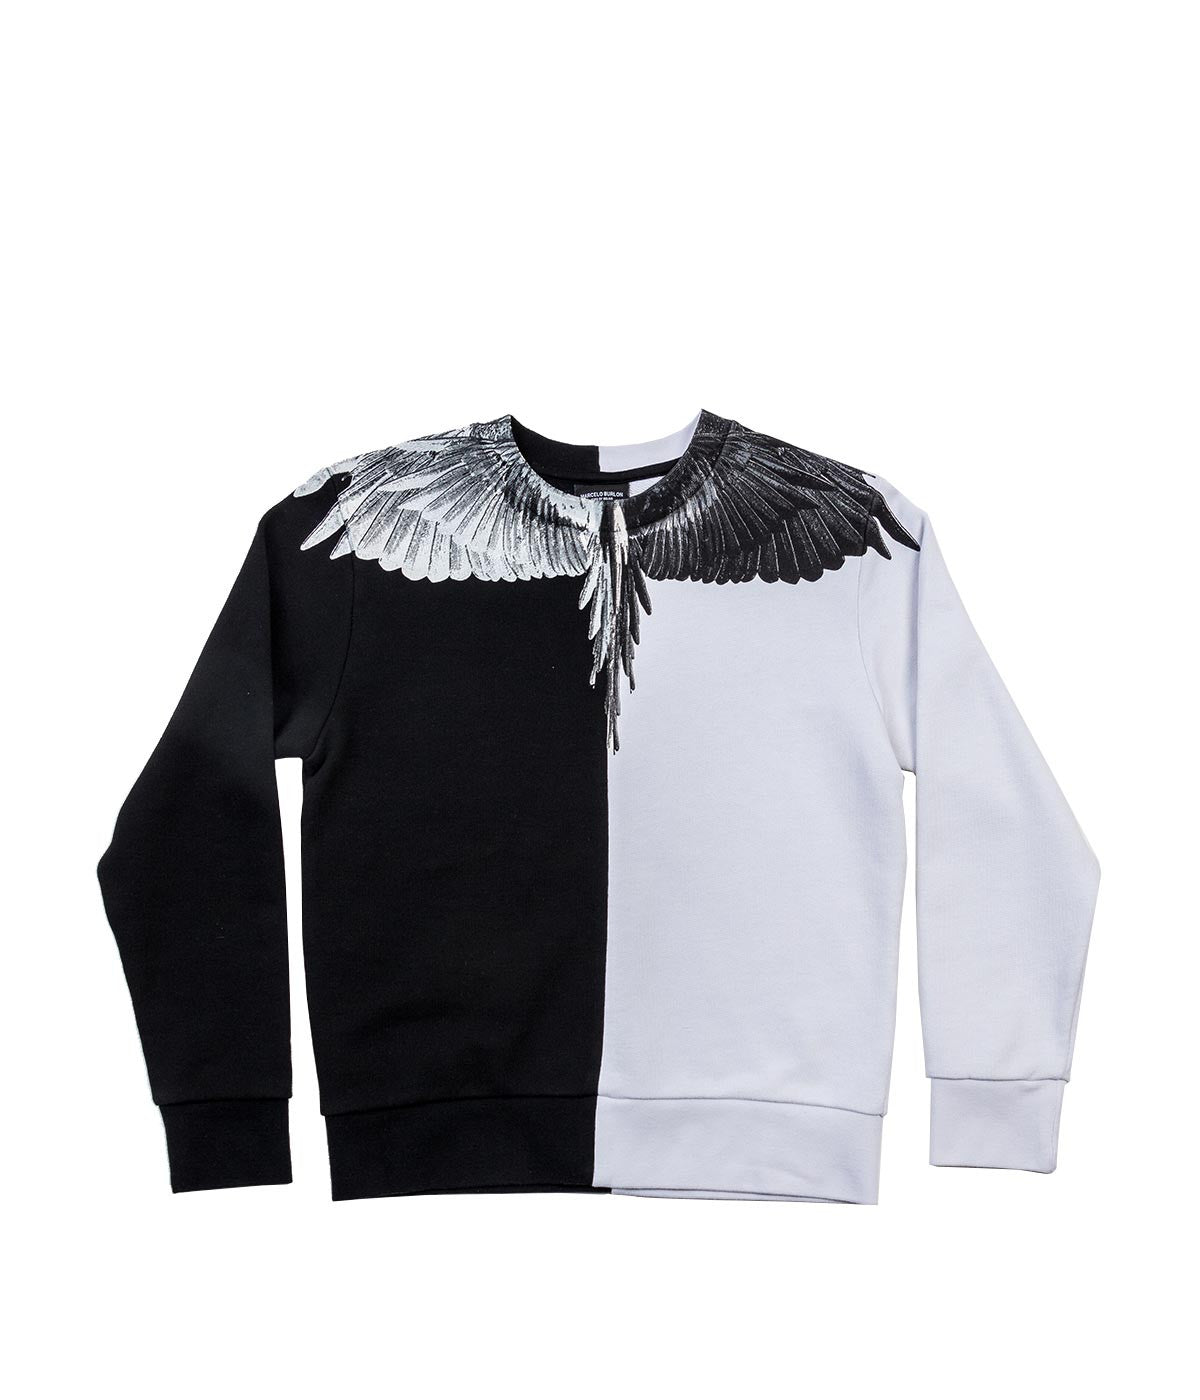 Black & White Pullover Sweatshirt